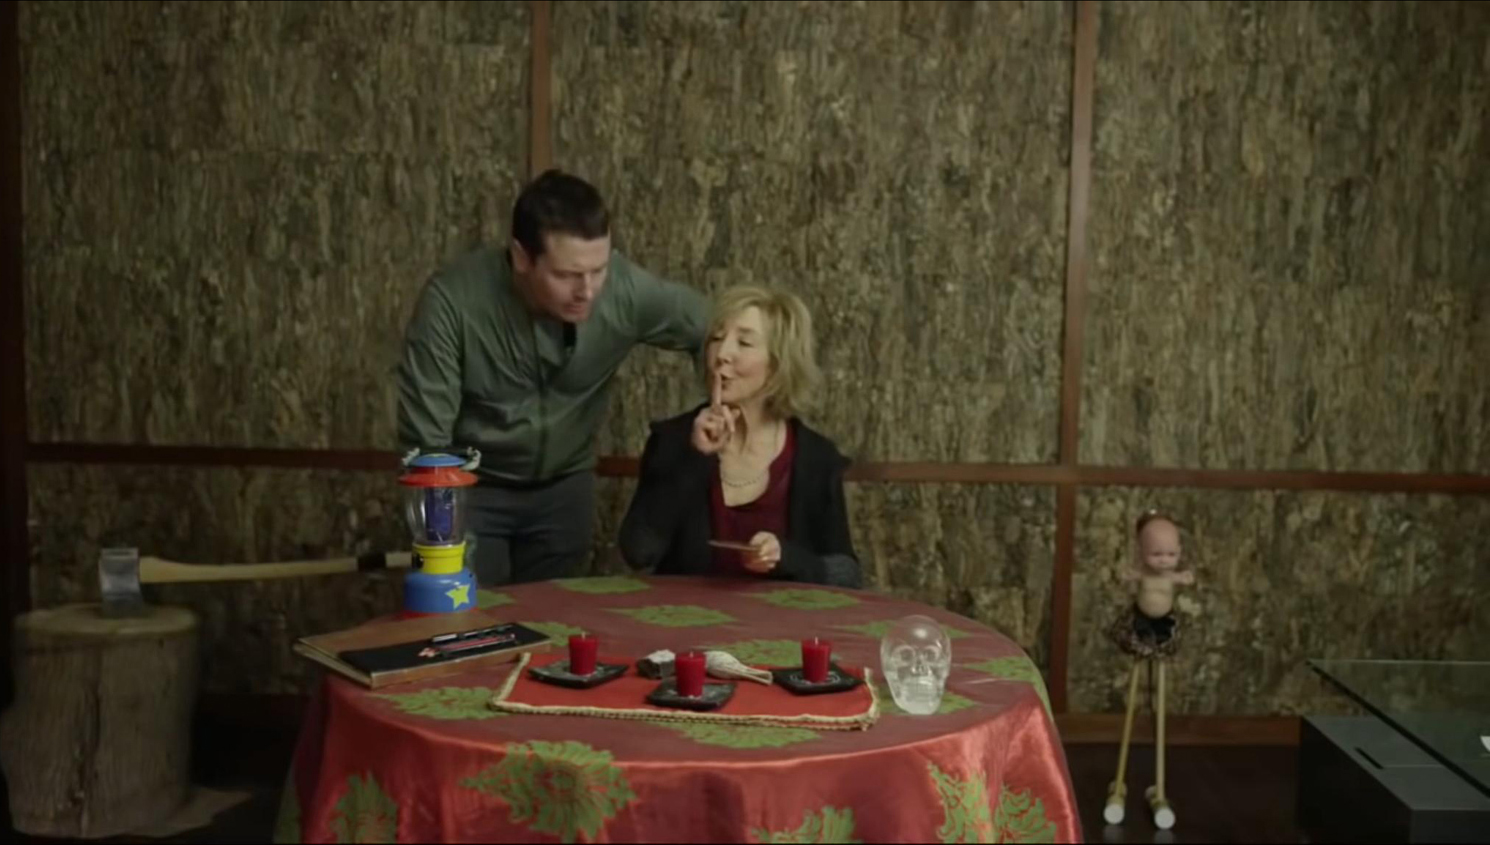 Lin Shaye, Leigh Whannell